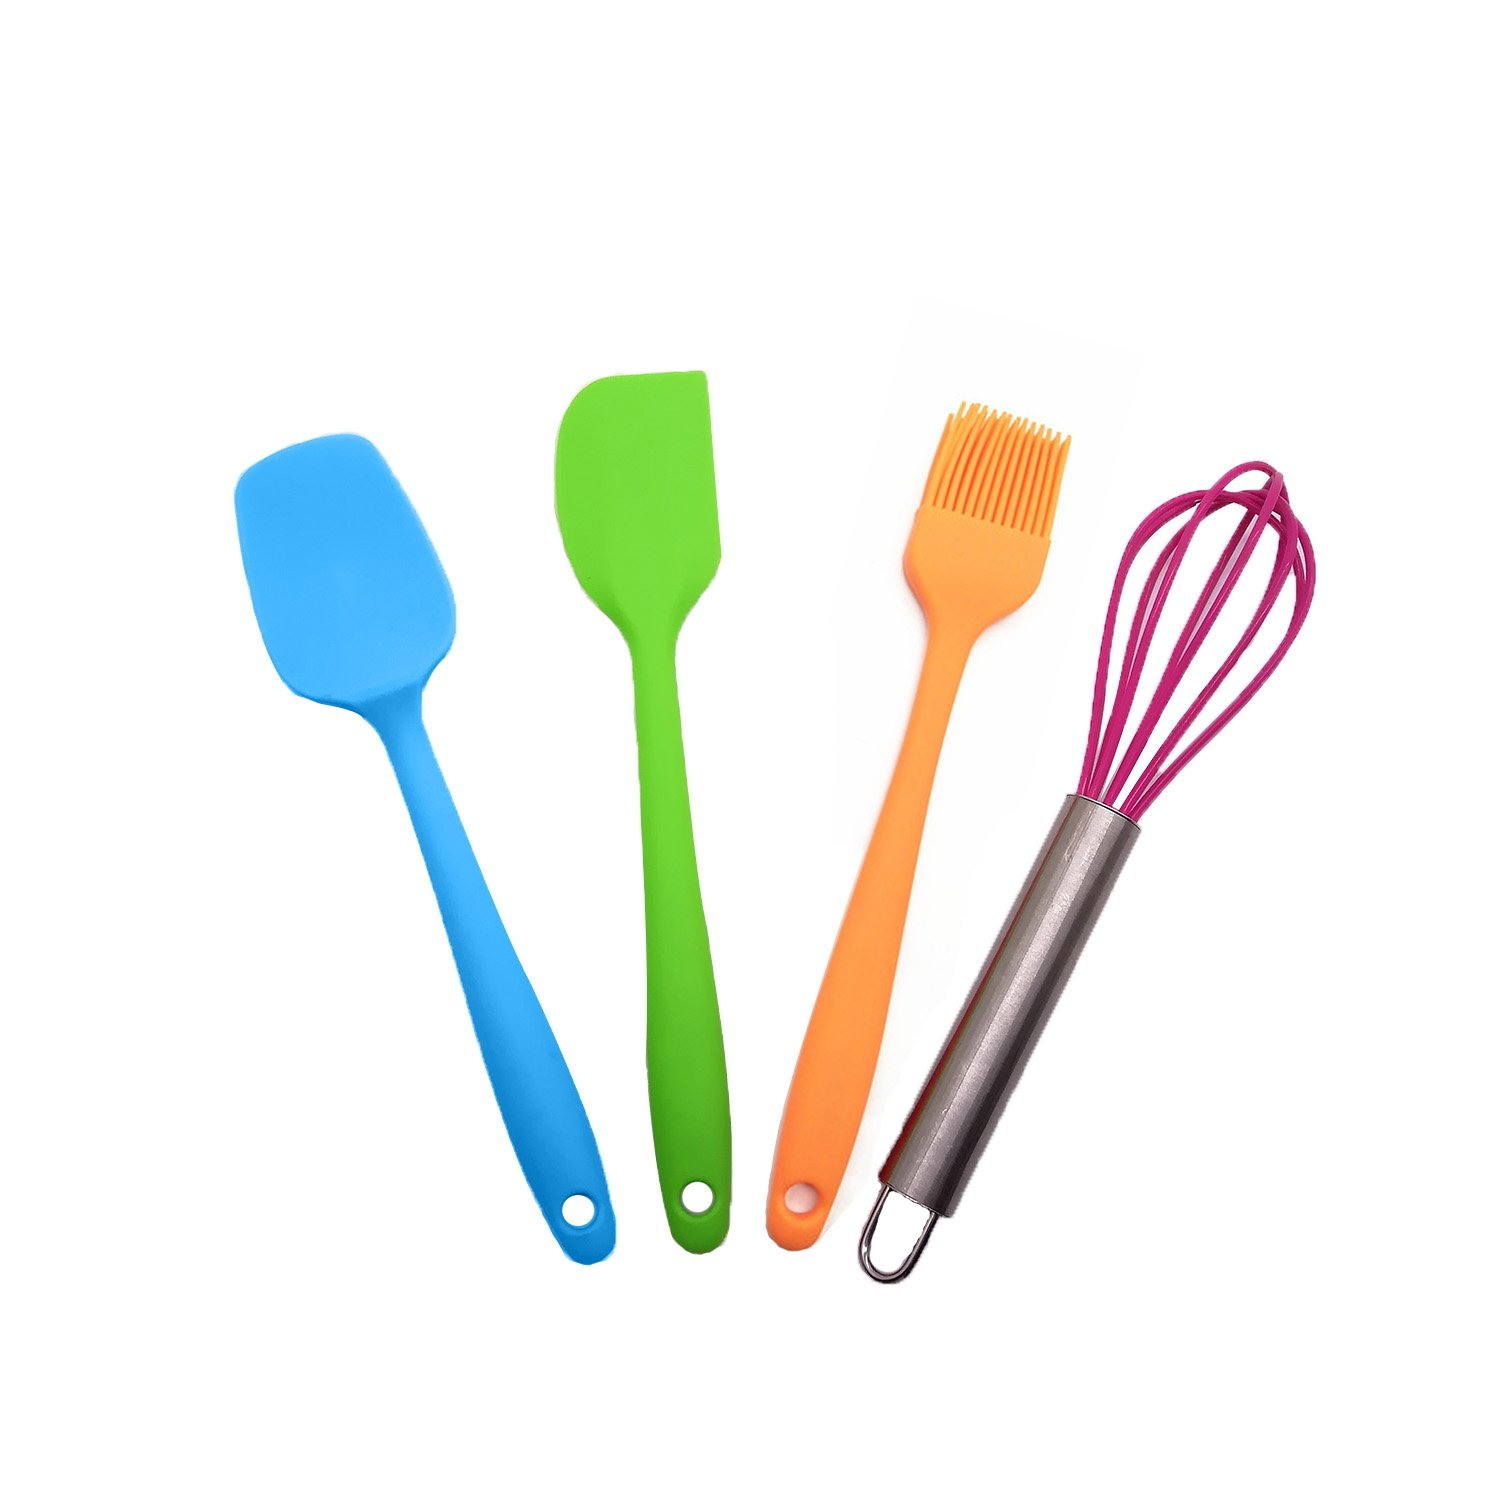 SET OF FOUR MULTI COLORED KITCHEN UTENSILS